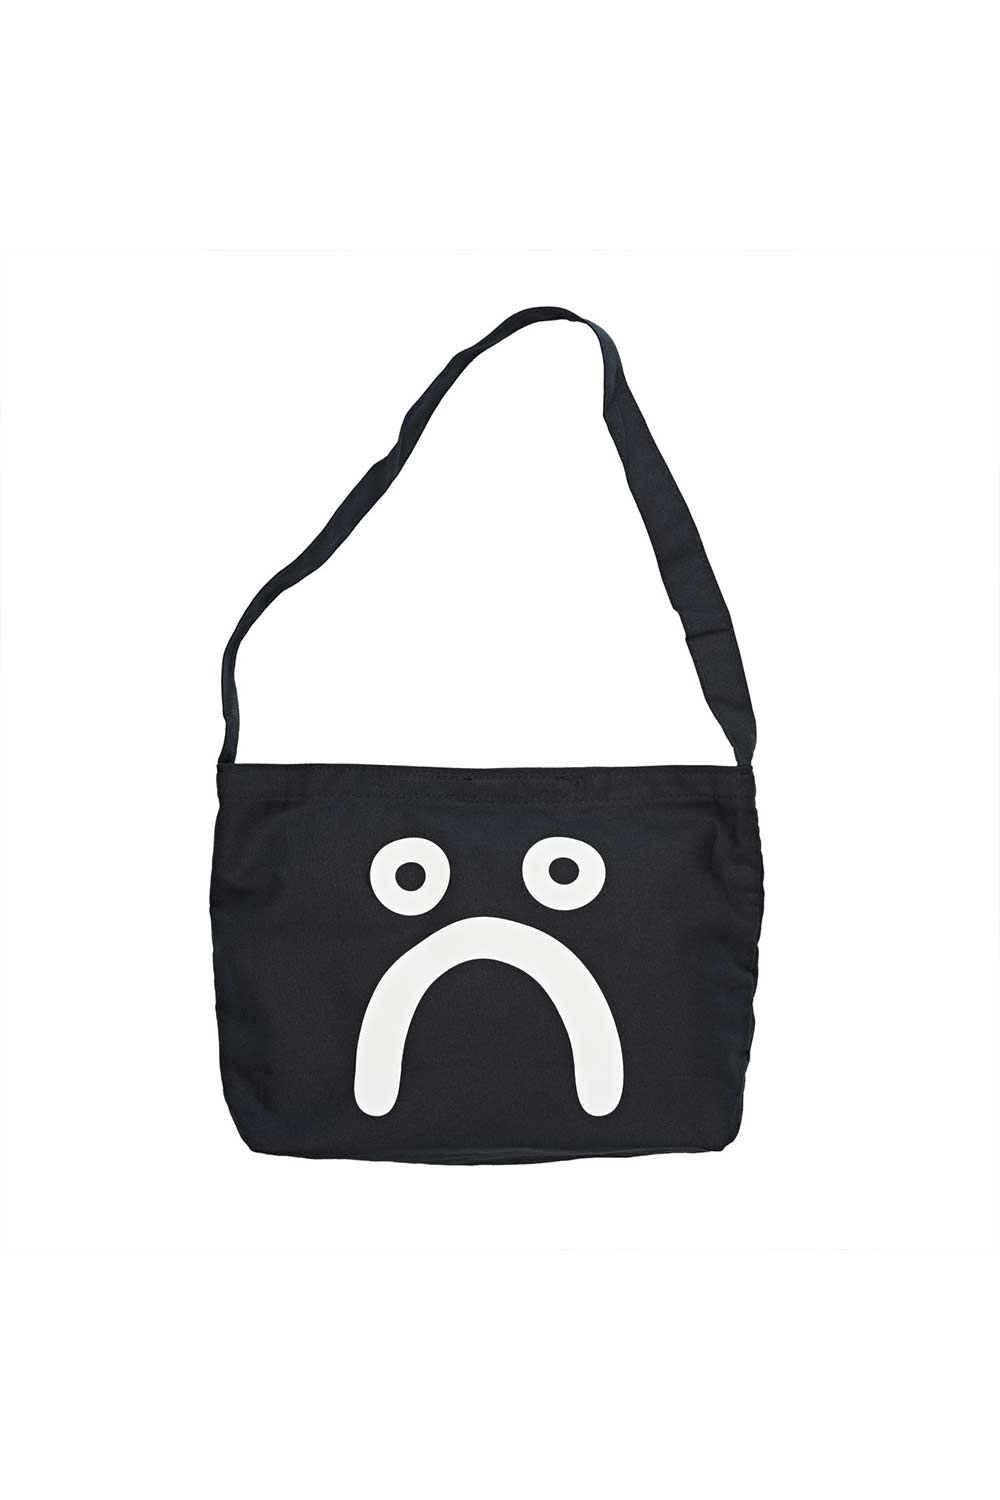 Happy Sad Tote Bag